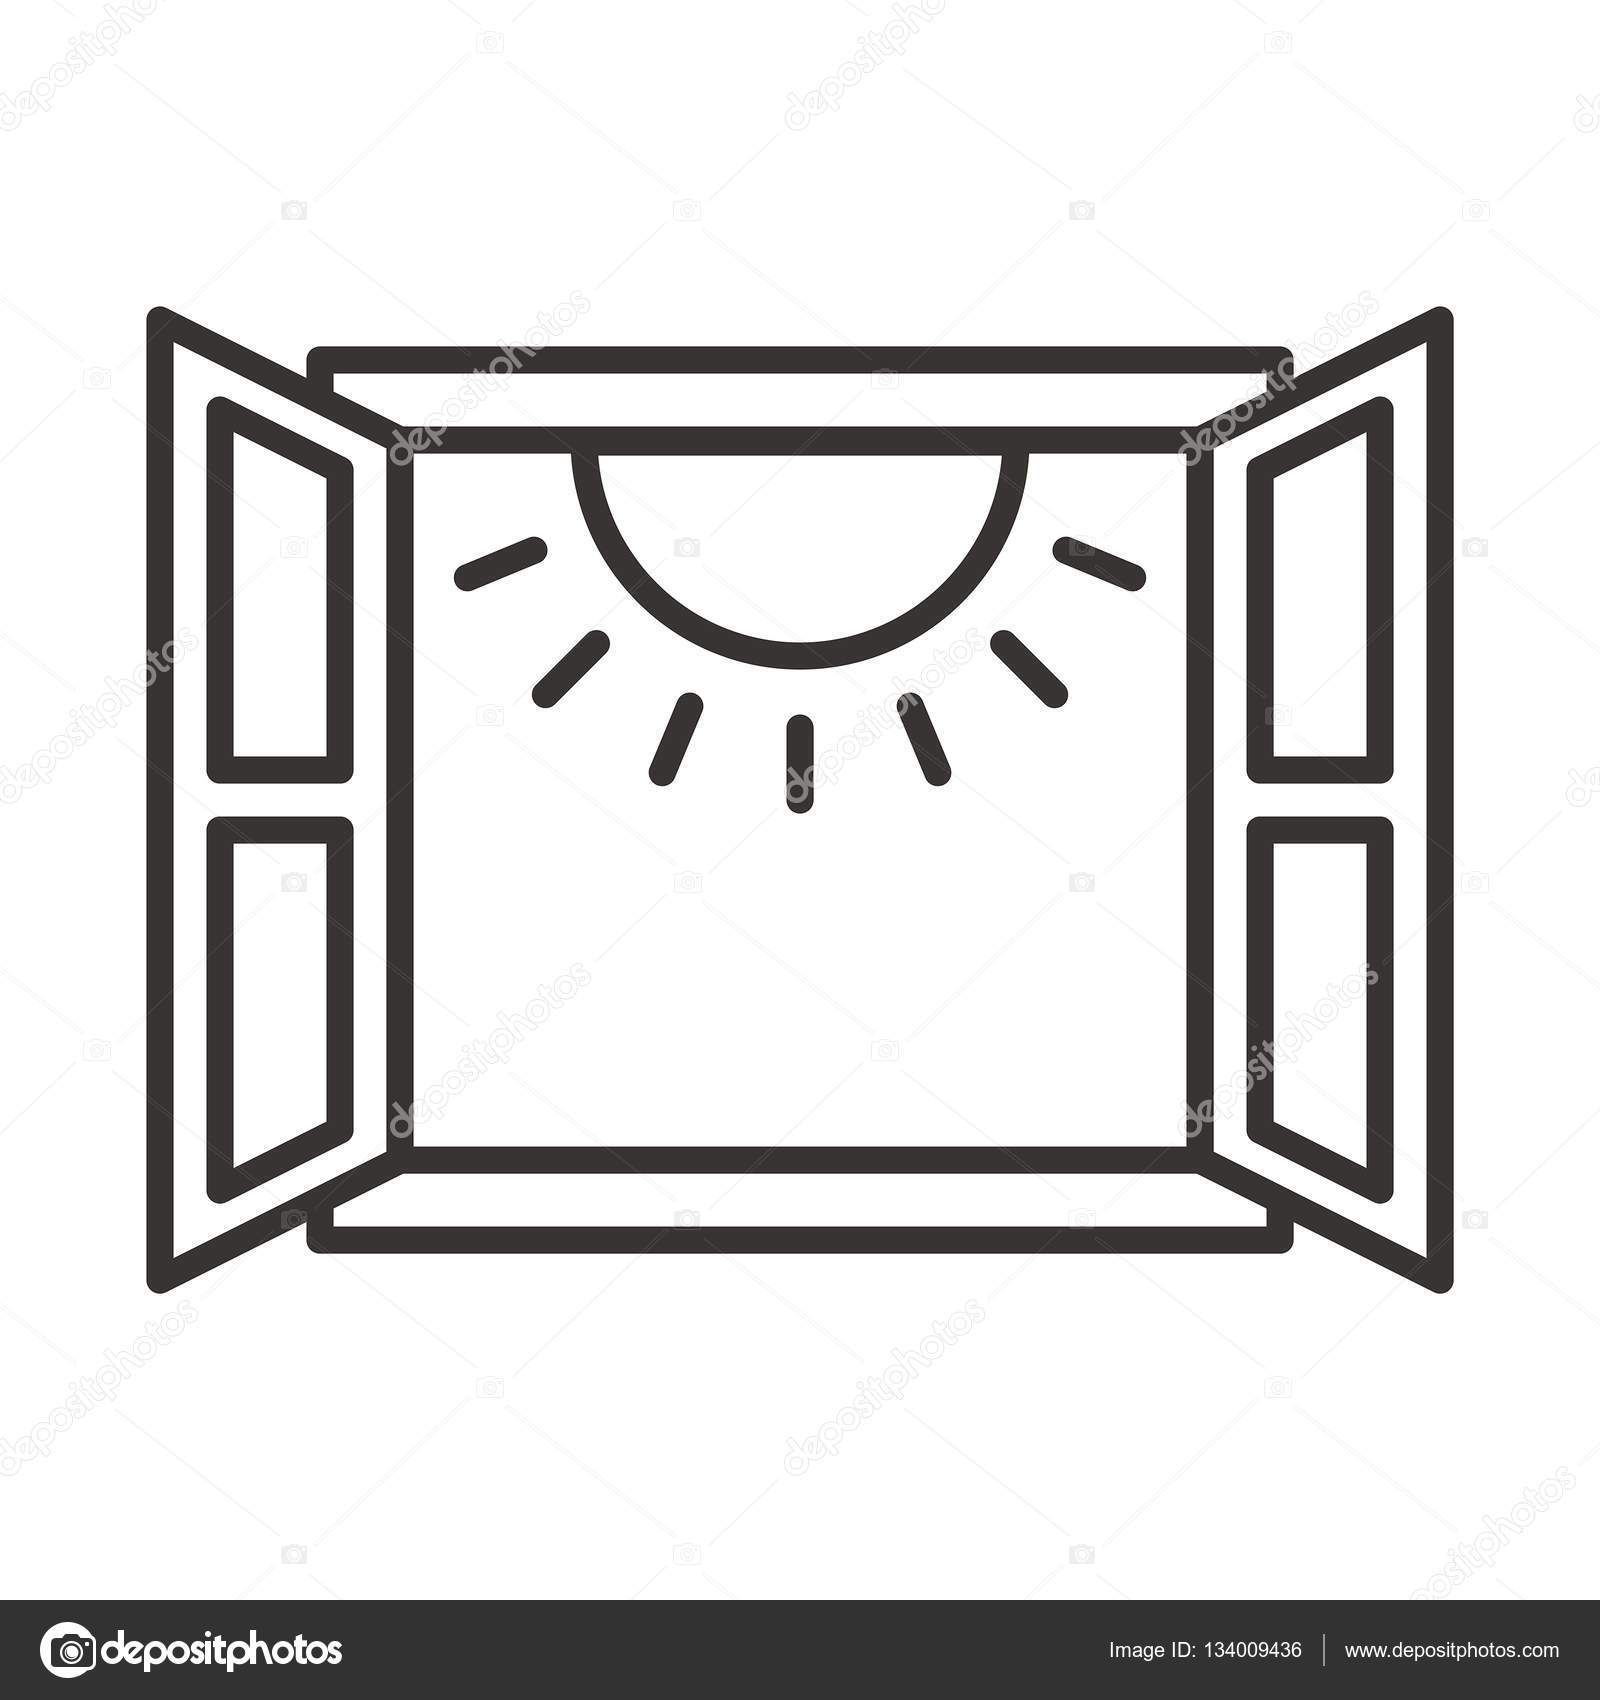 Black and white window clipart clipart royalty free Open window clipart black and white 2 » Clipart Portal clipart royalty free